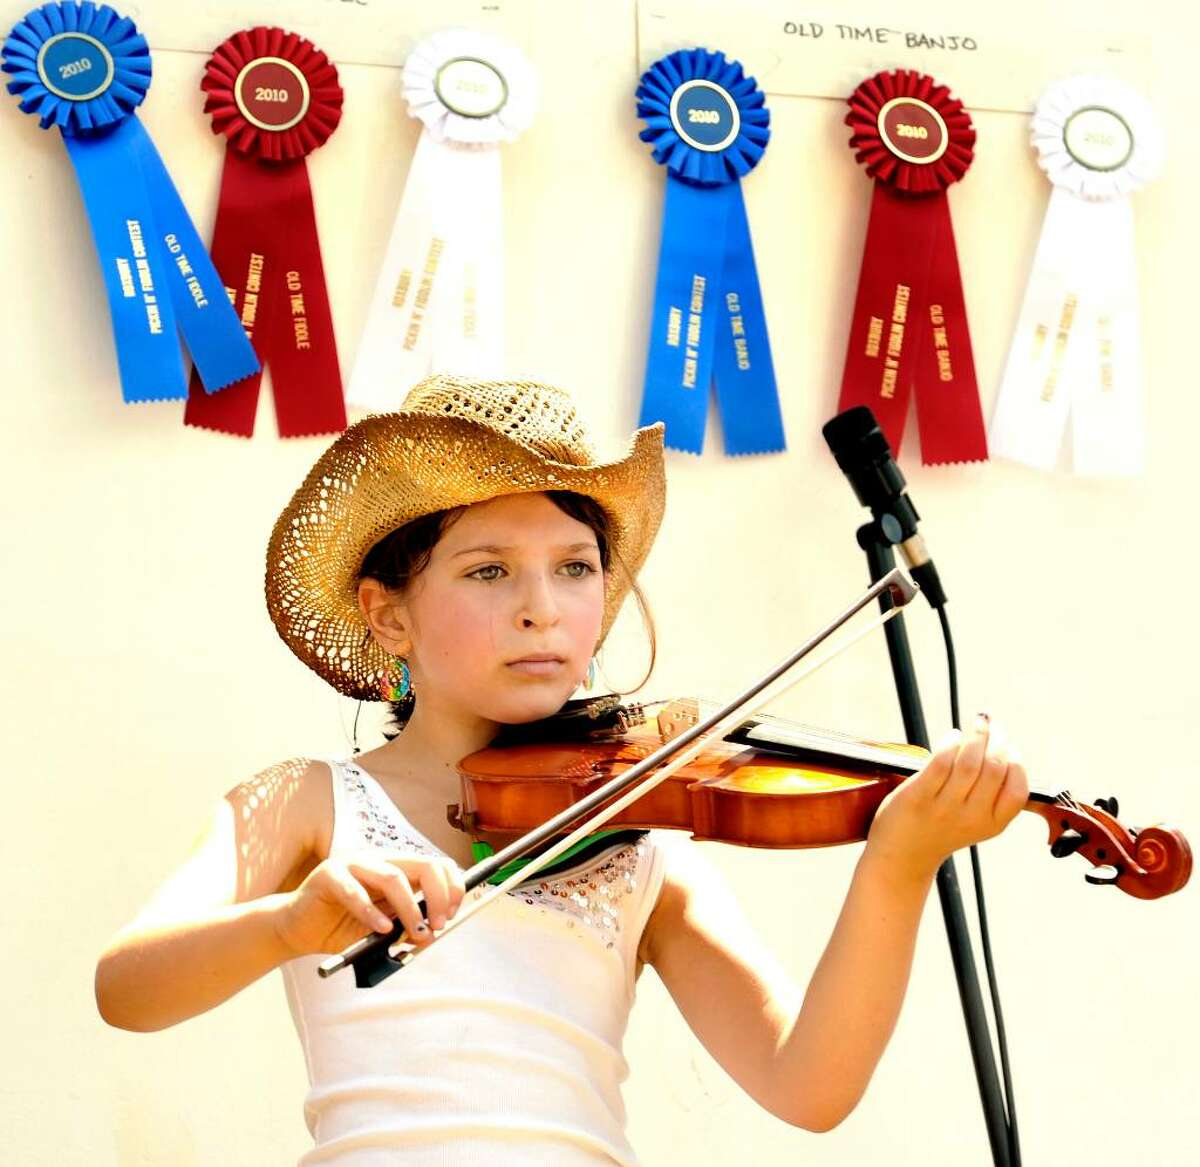 Jenna Hutensky, 8, of West Hartford, performs on stage during Pickin and Fiddlin, in Roxbury, on Sunday, July 11, 2010.